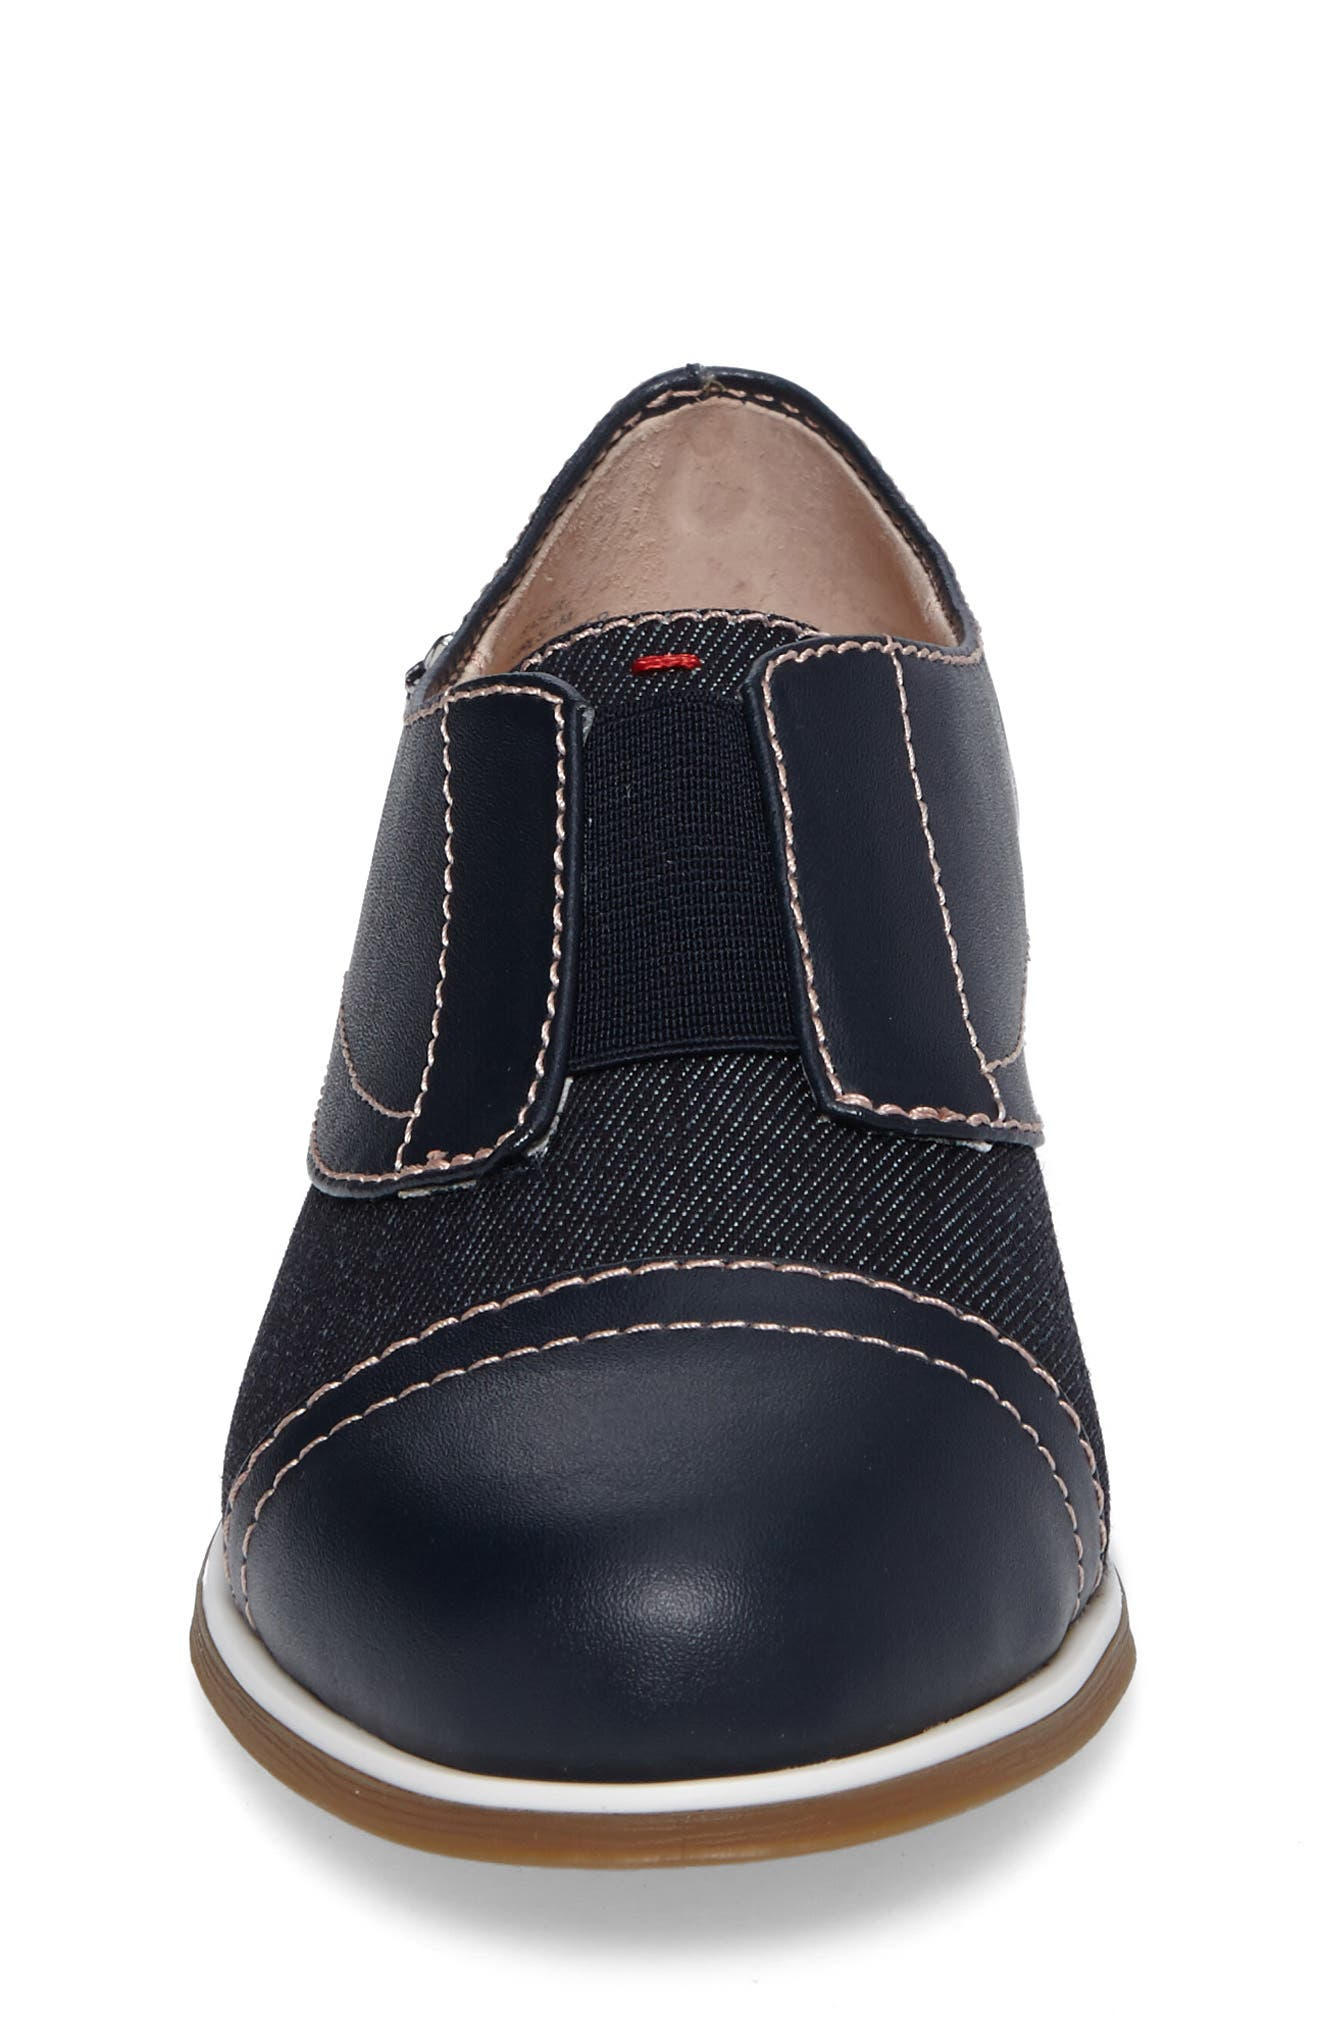 Alternate Image 4  - ED Ellen Degeneres Kassie Laceless Cap Toe Oxford (Toddler, Little Kid & Big Kid)